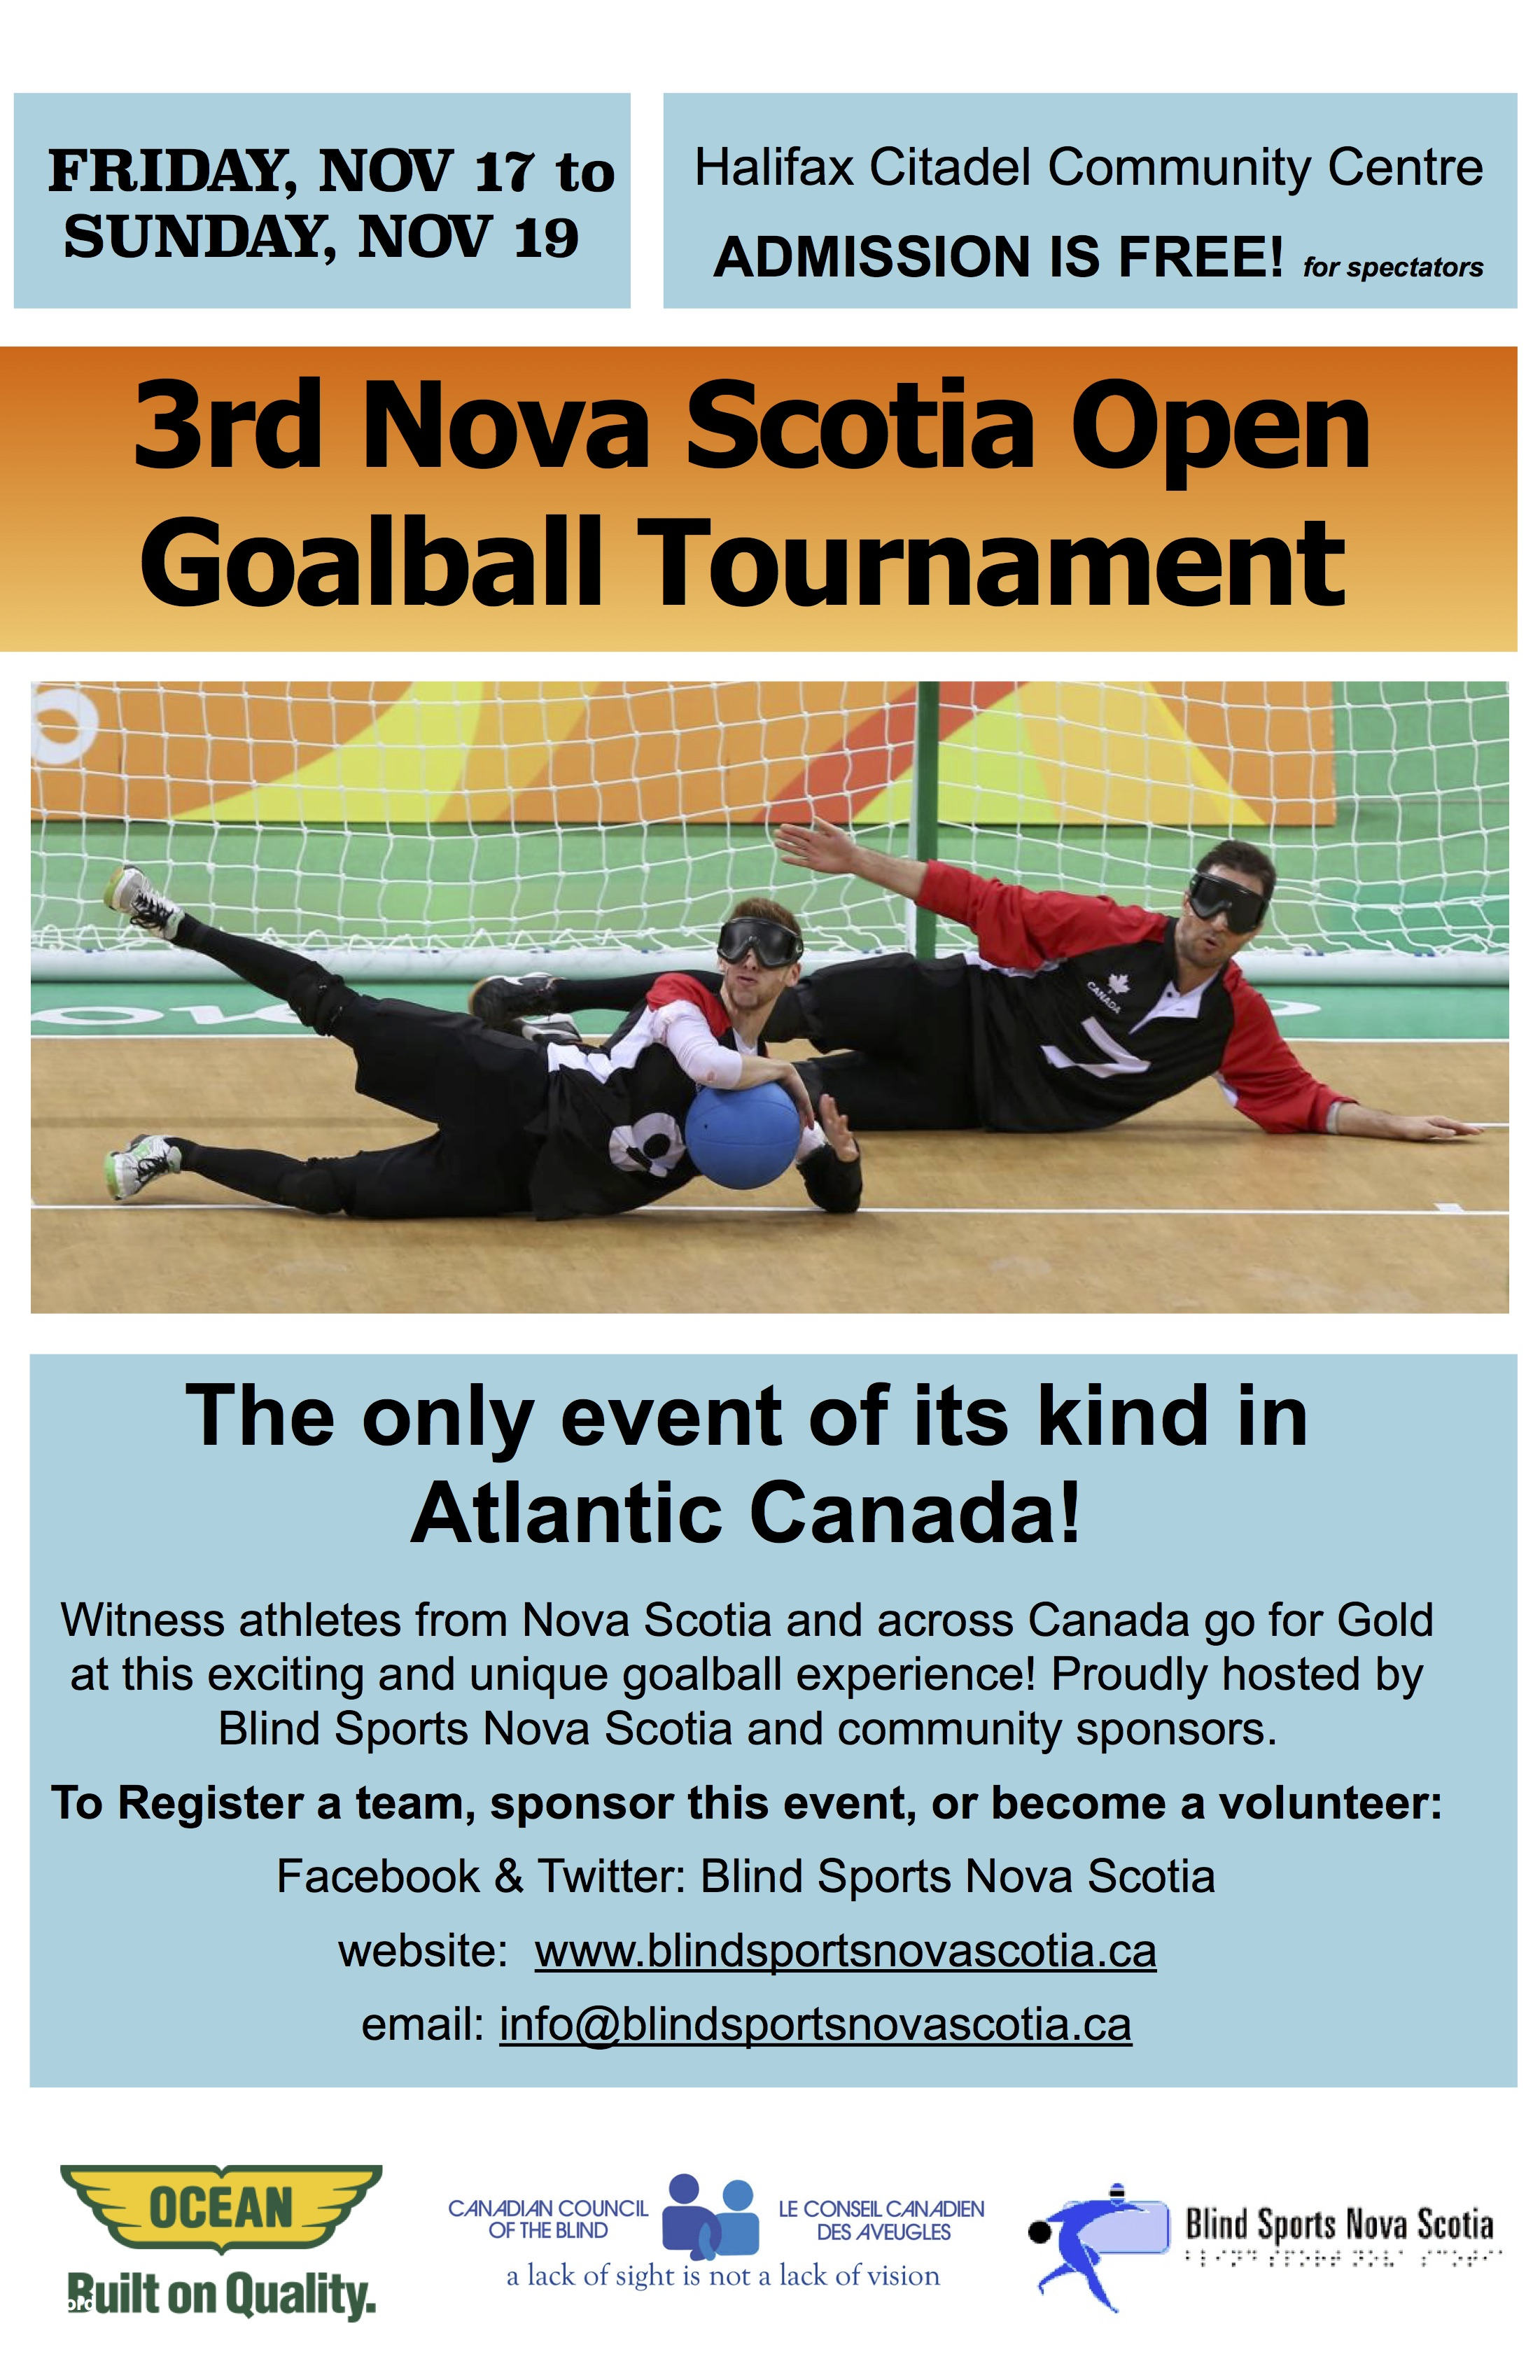 Event poster description: Friday Nov 17 to Sunday, Nov 19. Halifax Citadel Community Centre. Admission is free for spectators! 3rd Nova Scotia Open Goalball Tournament.  The only event of its kind in Atlantic Canada! Witness athletes from Nova Scotia and across Canada go for Gold at this exciting and unique goalball experience! Proudly hosted by Blind Sports Nova Scotia and community sponsors. To Register a team, sponsor this event, or become a volunteer: Facebook & Twitter: Blind Sports Nova Scotia  website: www.blindsportsnovascotia.ca email: info@blindsportsnovascotia.ca Sponsors & hosts logos: Ocean. Built on Quality; Canadian Council of the Blind. A lack of sight is not a lack of vision; Blind Sports Nova Scotia